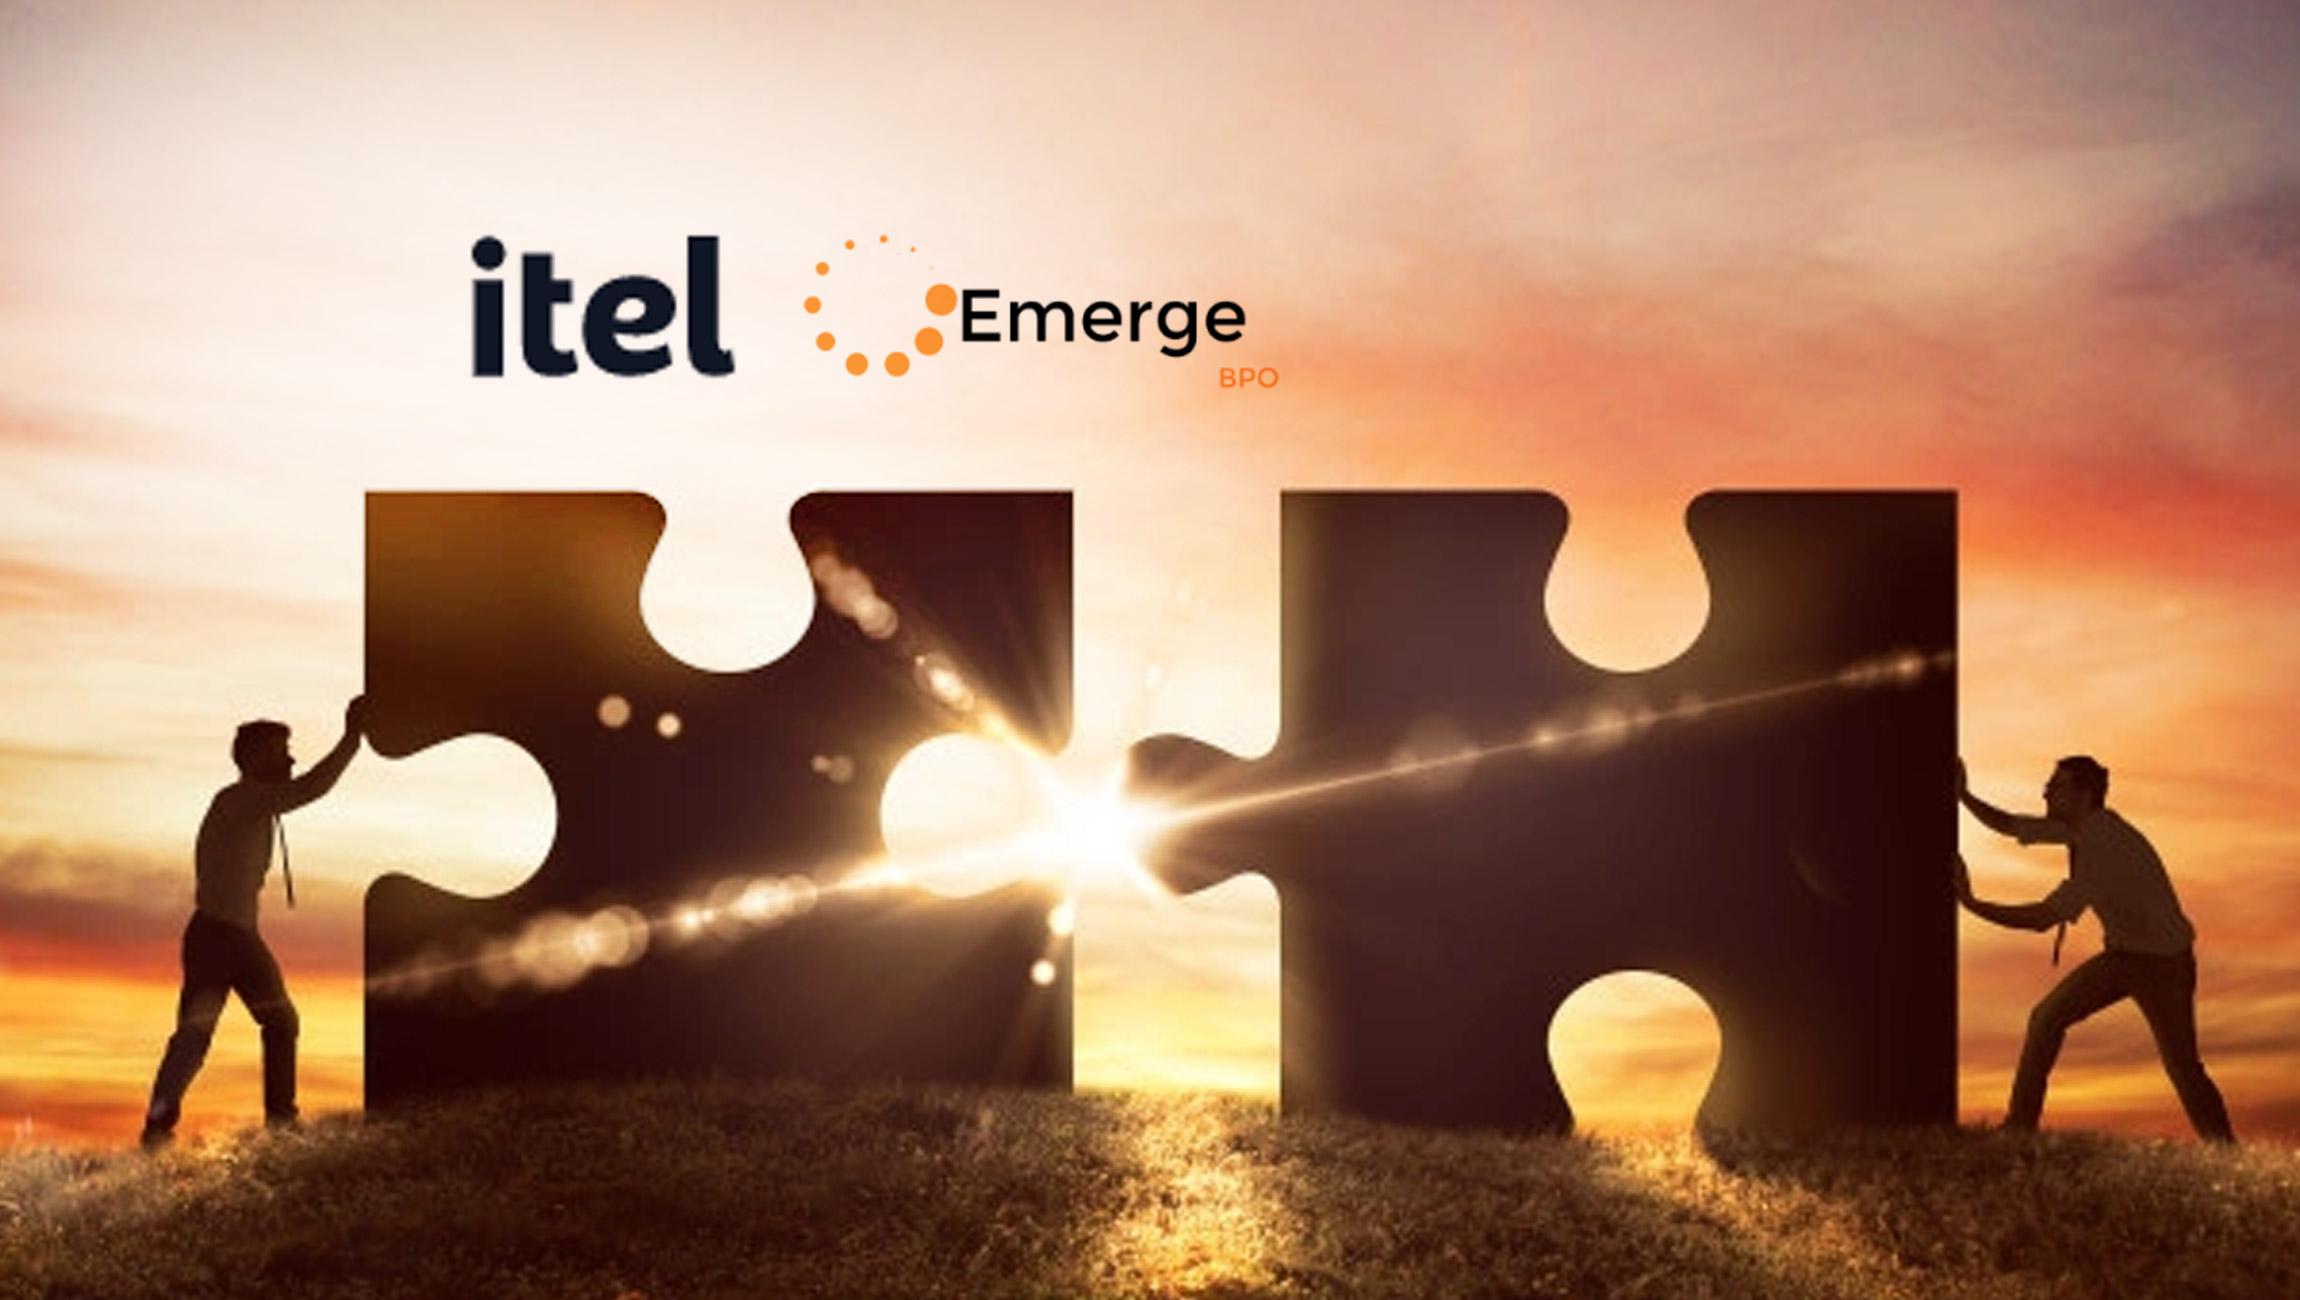 itel-Acquires-Emerge-BPO--Making-Another-Bold-Move-Expanding-its-Geographic-Footprint-into-Guyana-and-Honduras